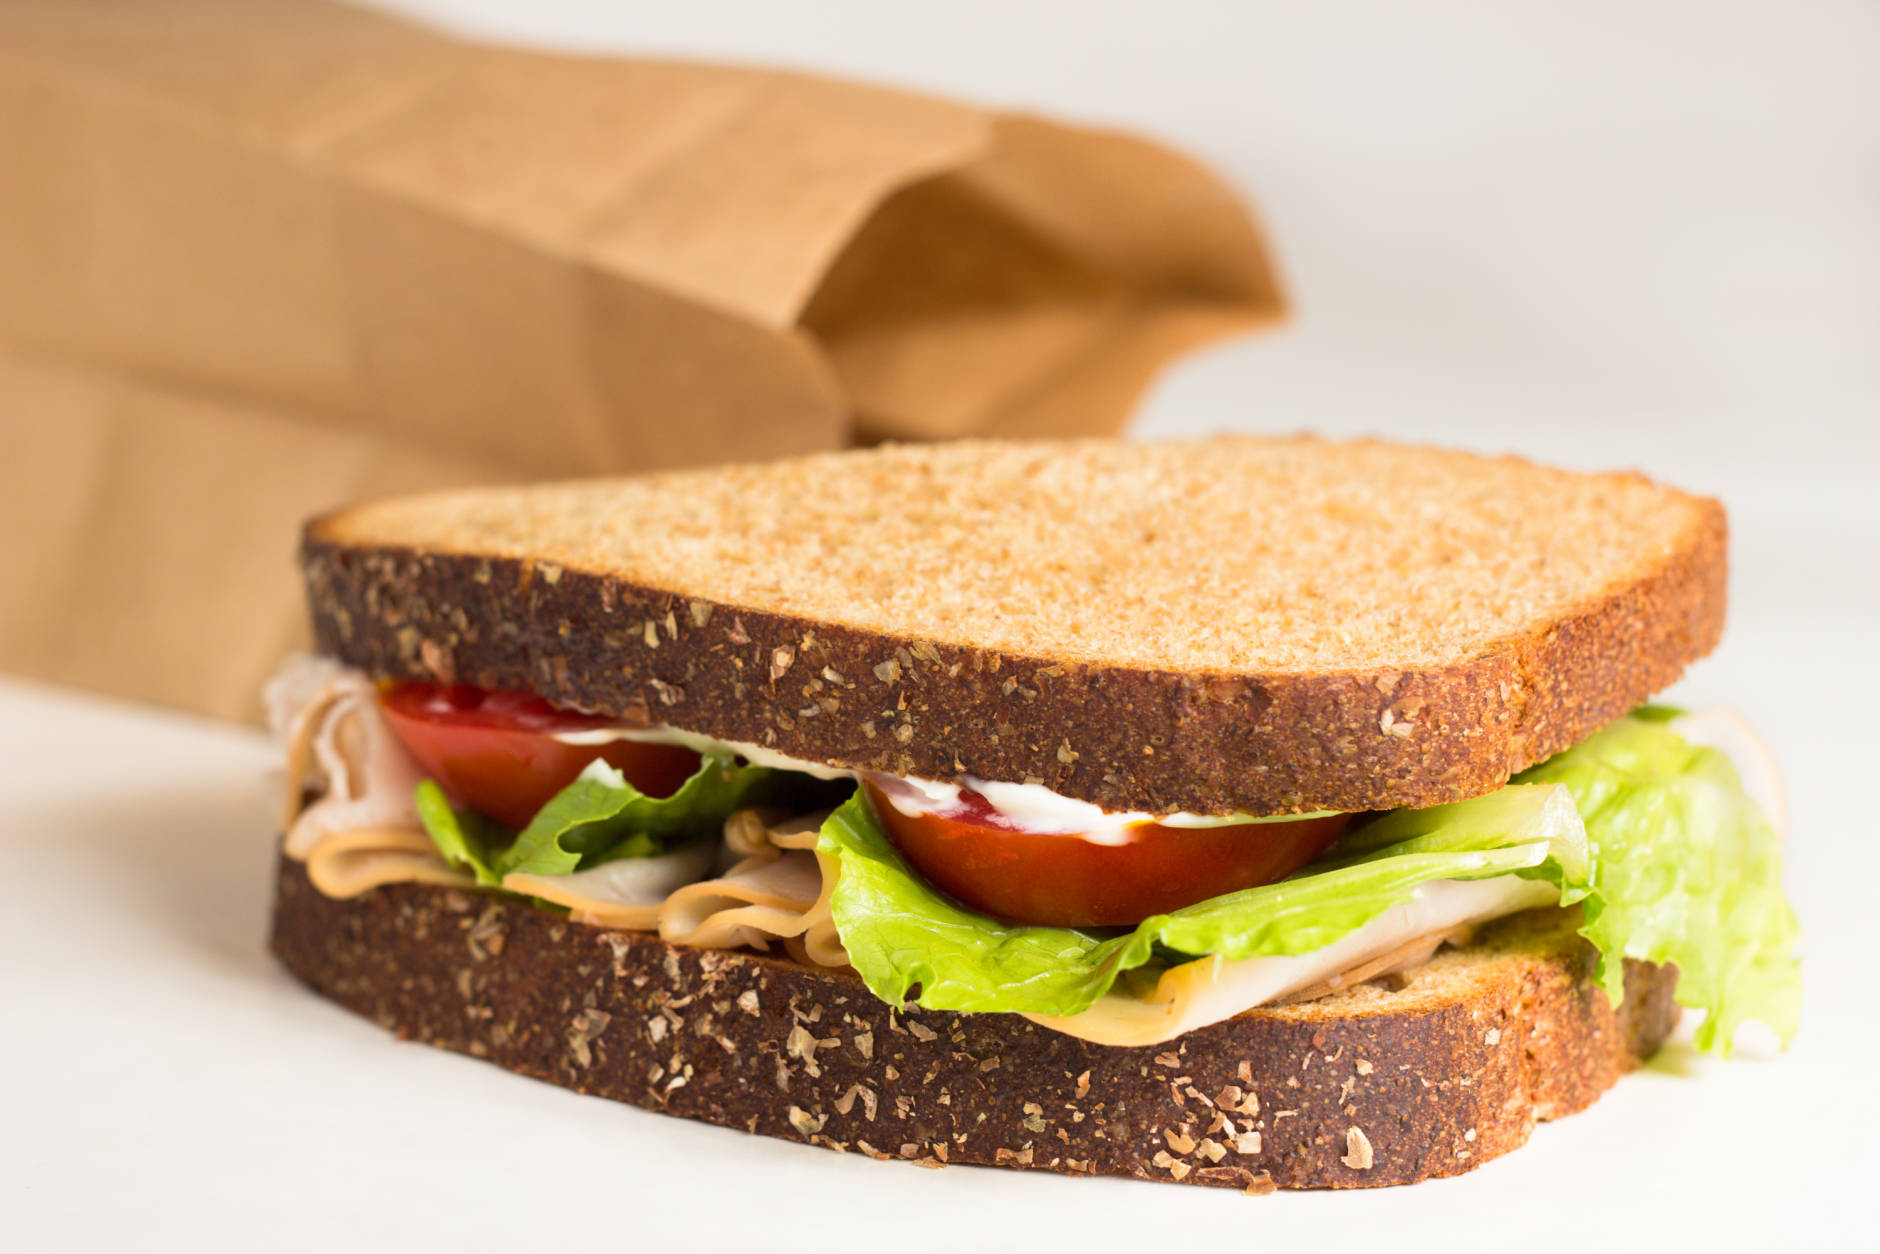 Studies suggest that eating lunch too late in the day makes it harder to lose weight. (Getty Images/iStockphoto/lisa combs)